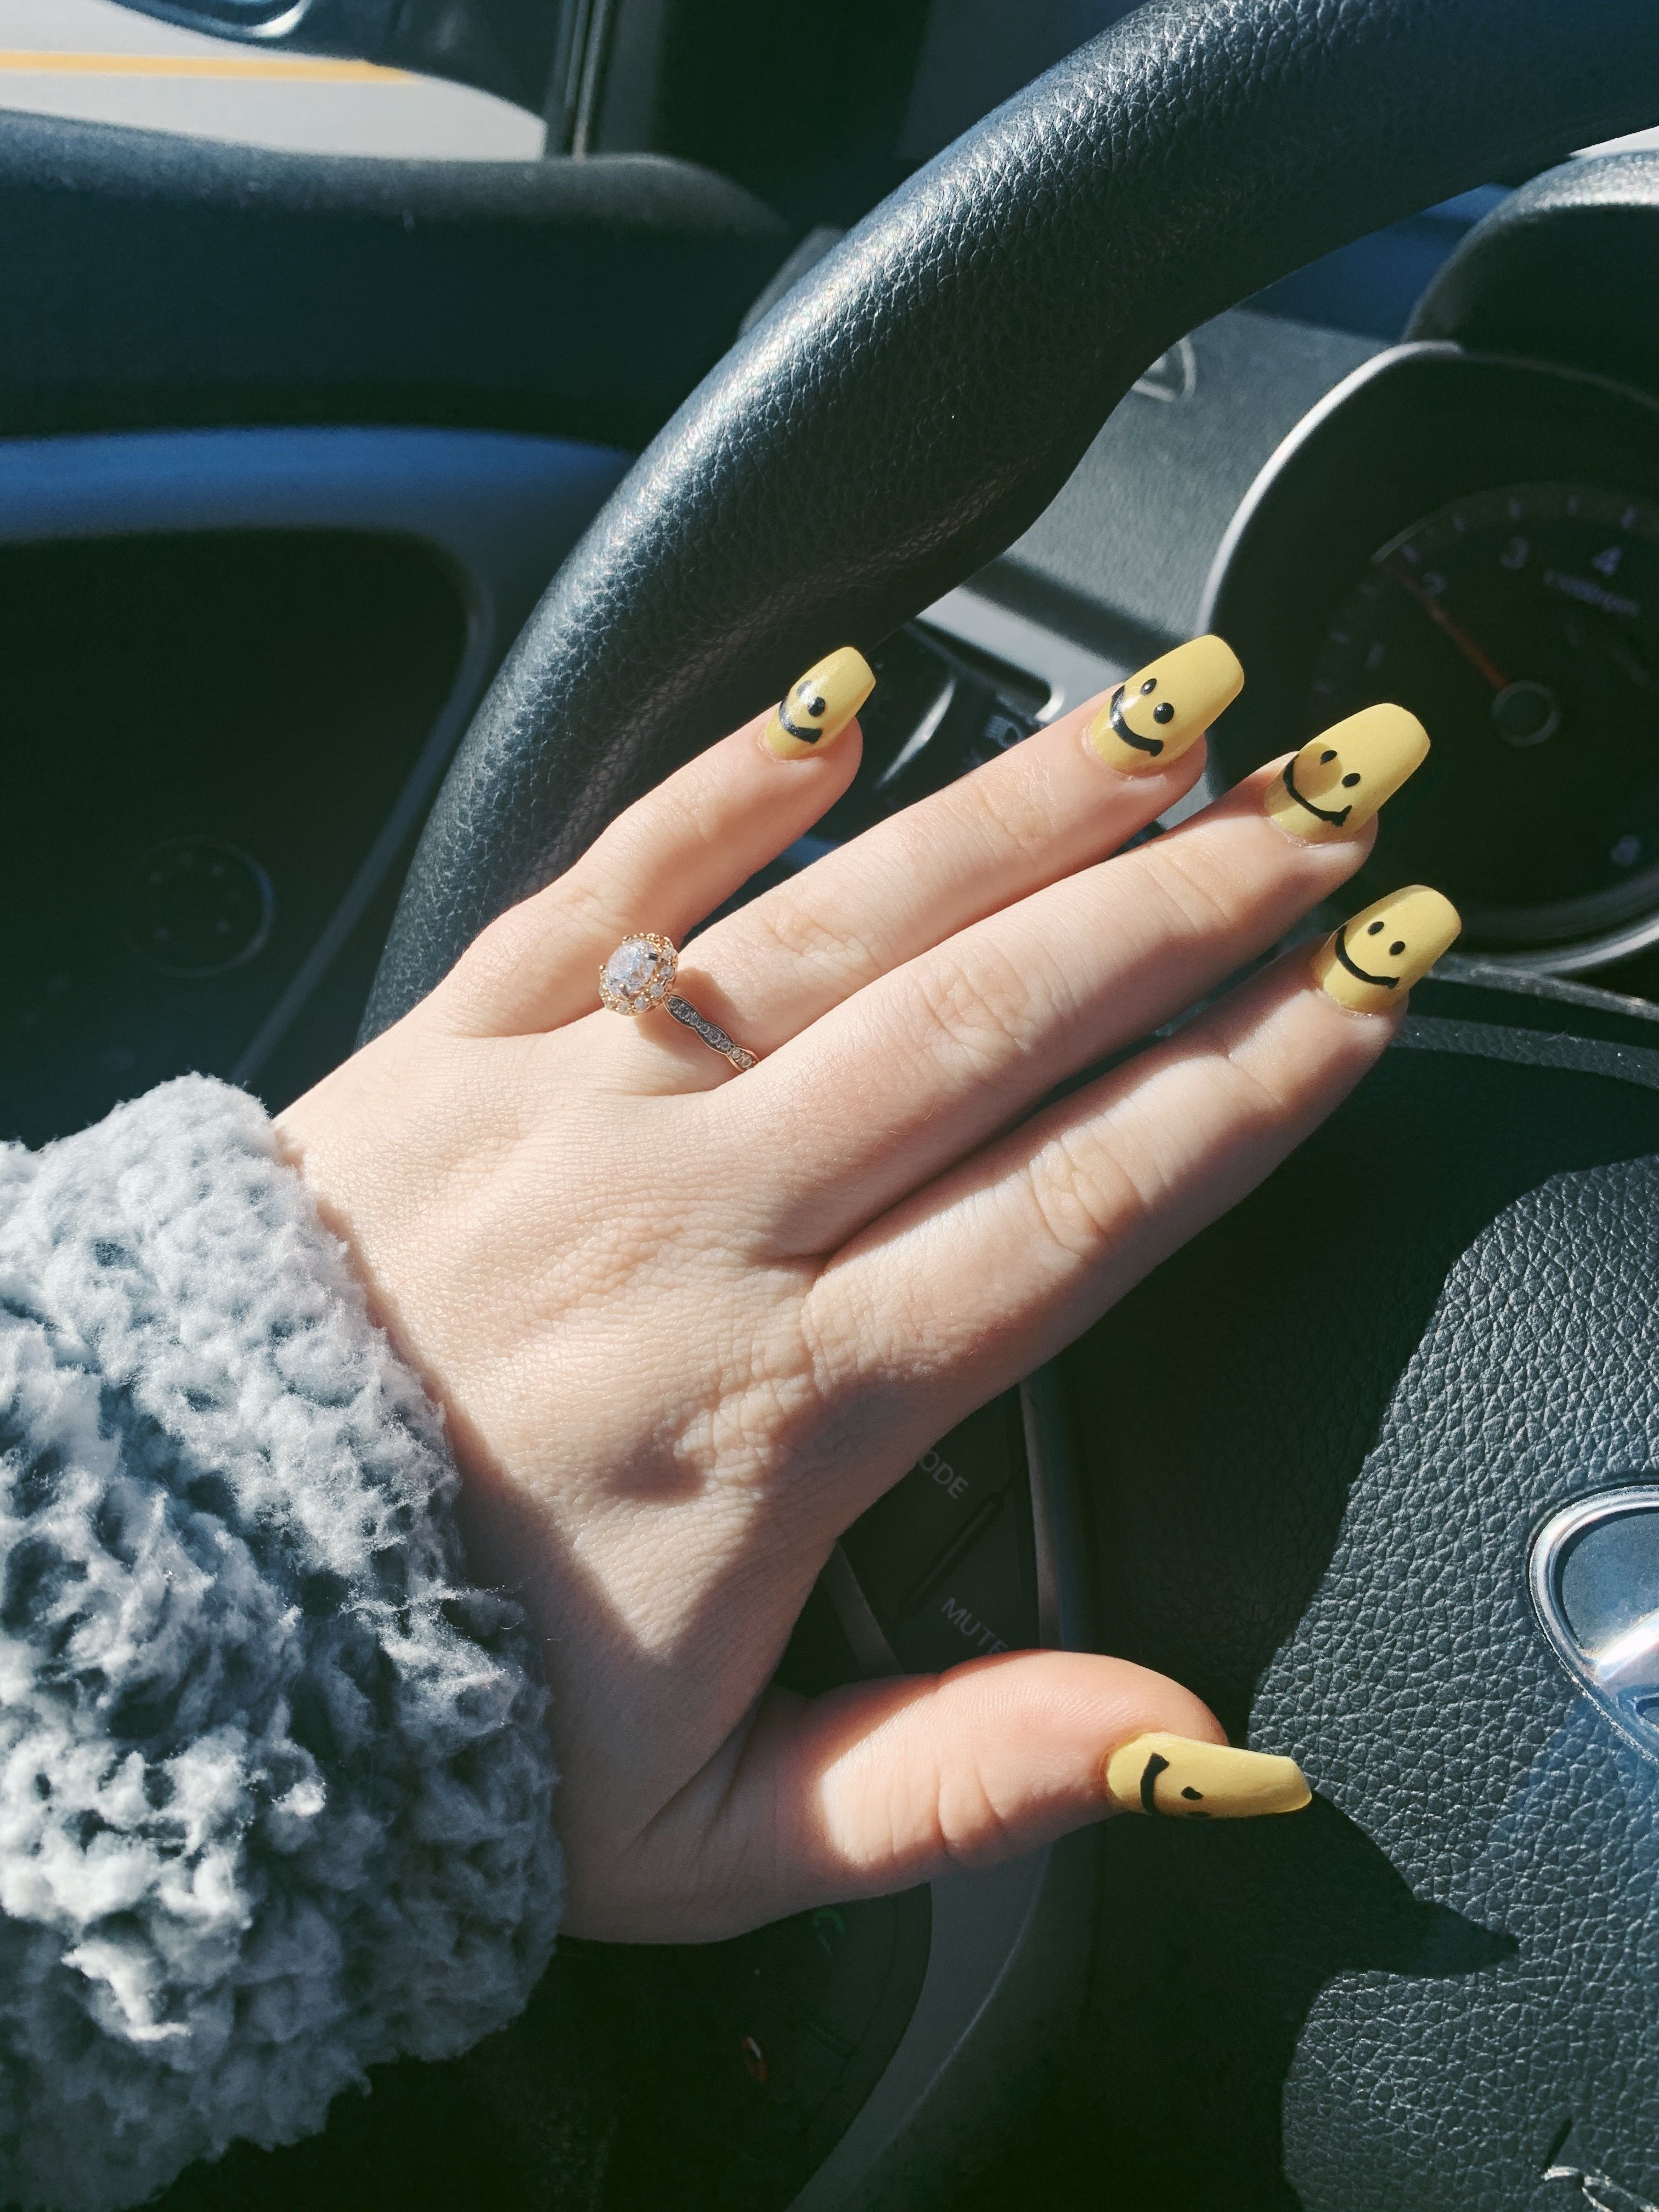 Pin By Lacey Saunders On Nails In 2020 Harry Styles Tattoos Fashion Nails One Direction Nails